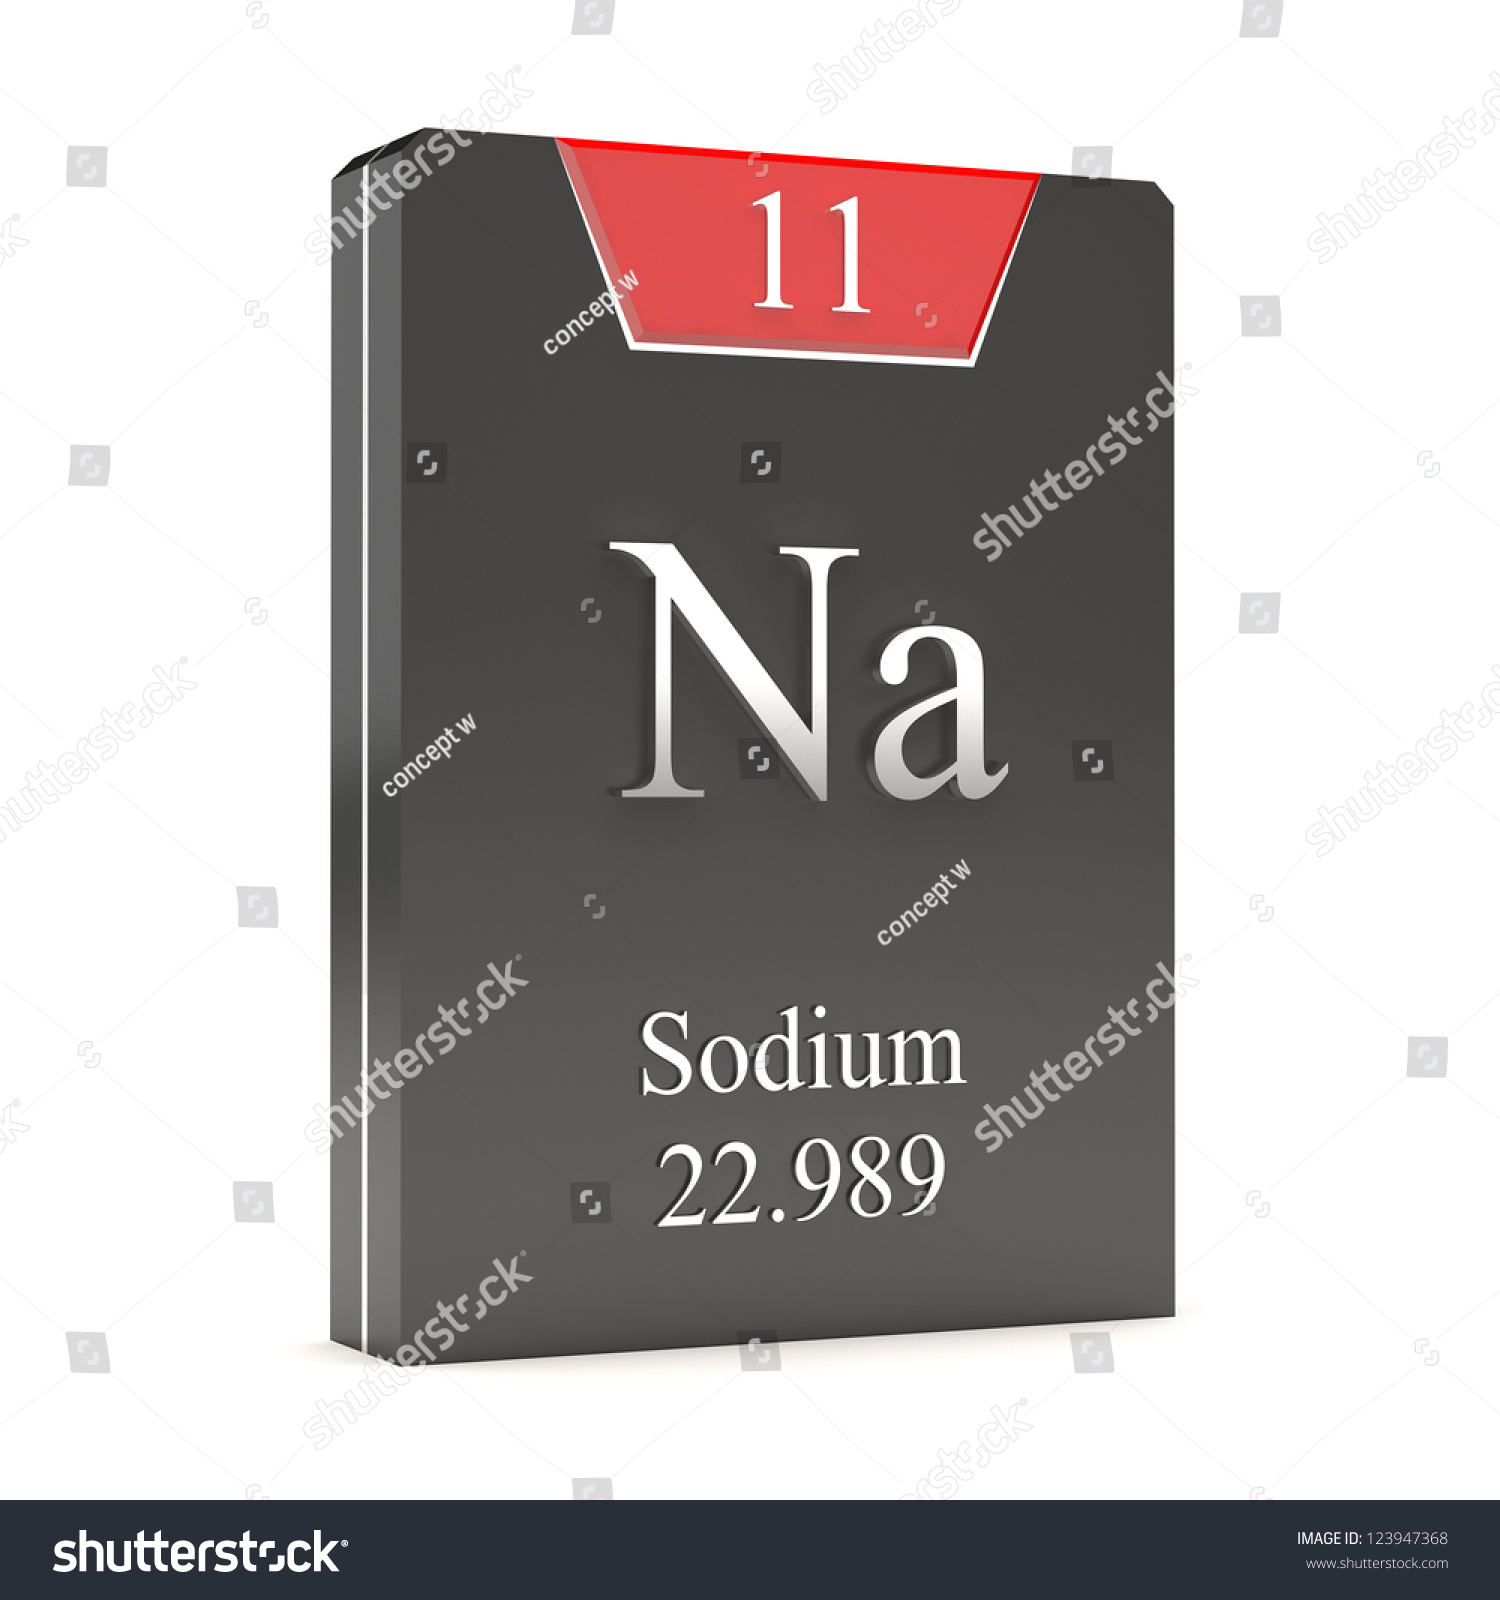 Sodium symbol periodic table image collections periodic table images periodic table of sodium image collections periodic table images why is sodium na on the periodic gamestrikefo Image collections